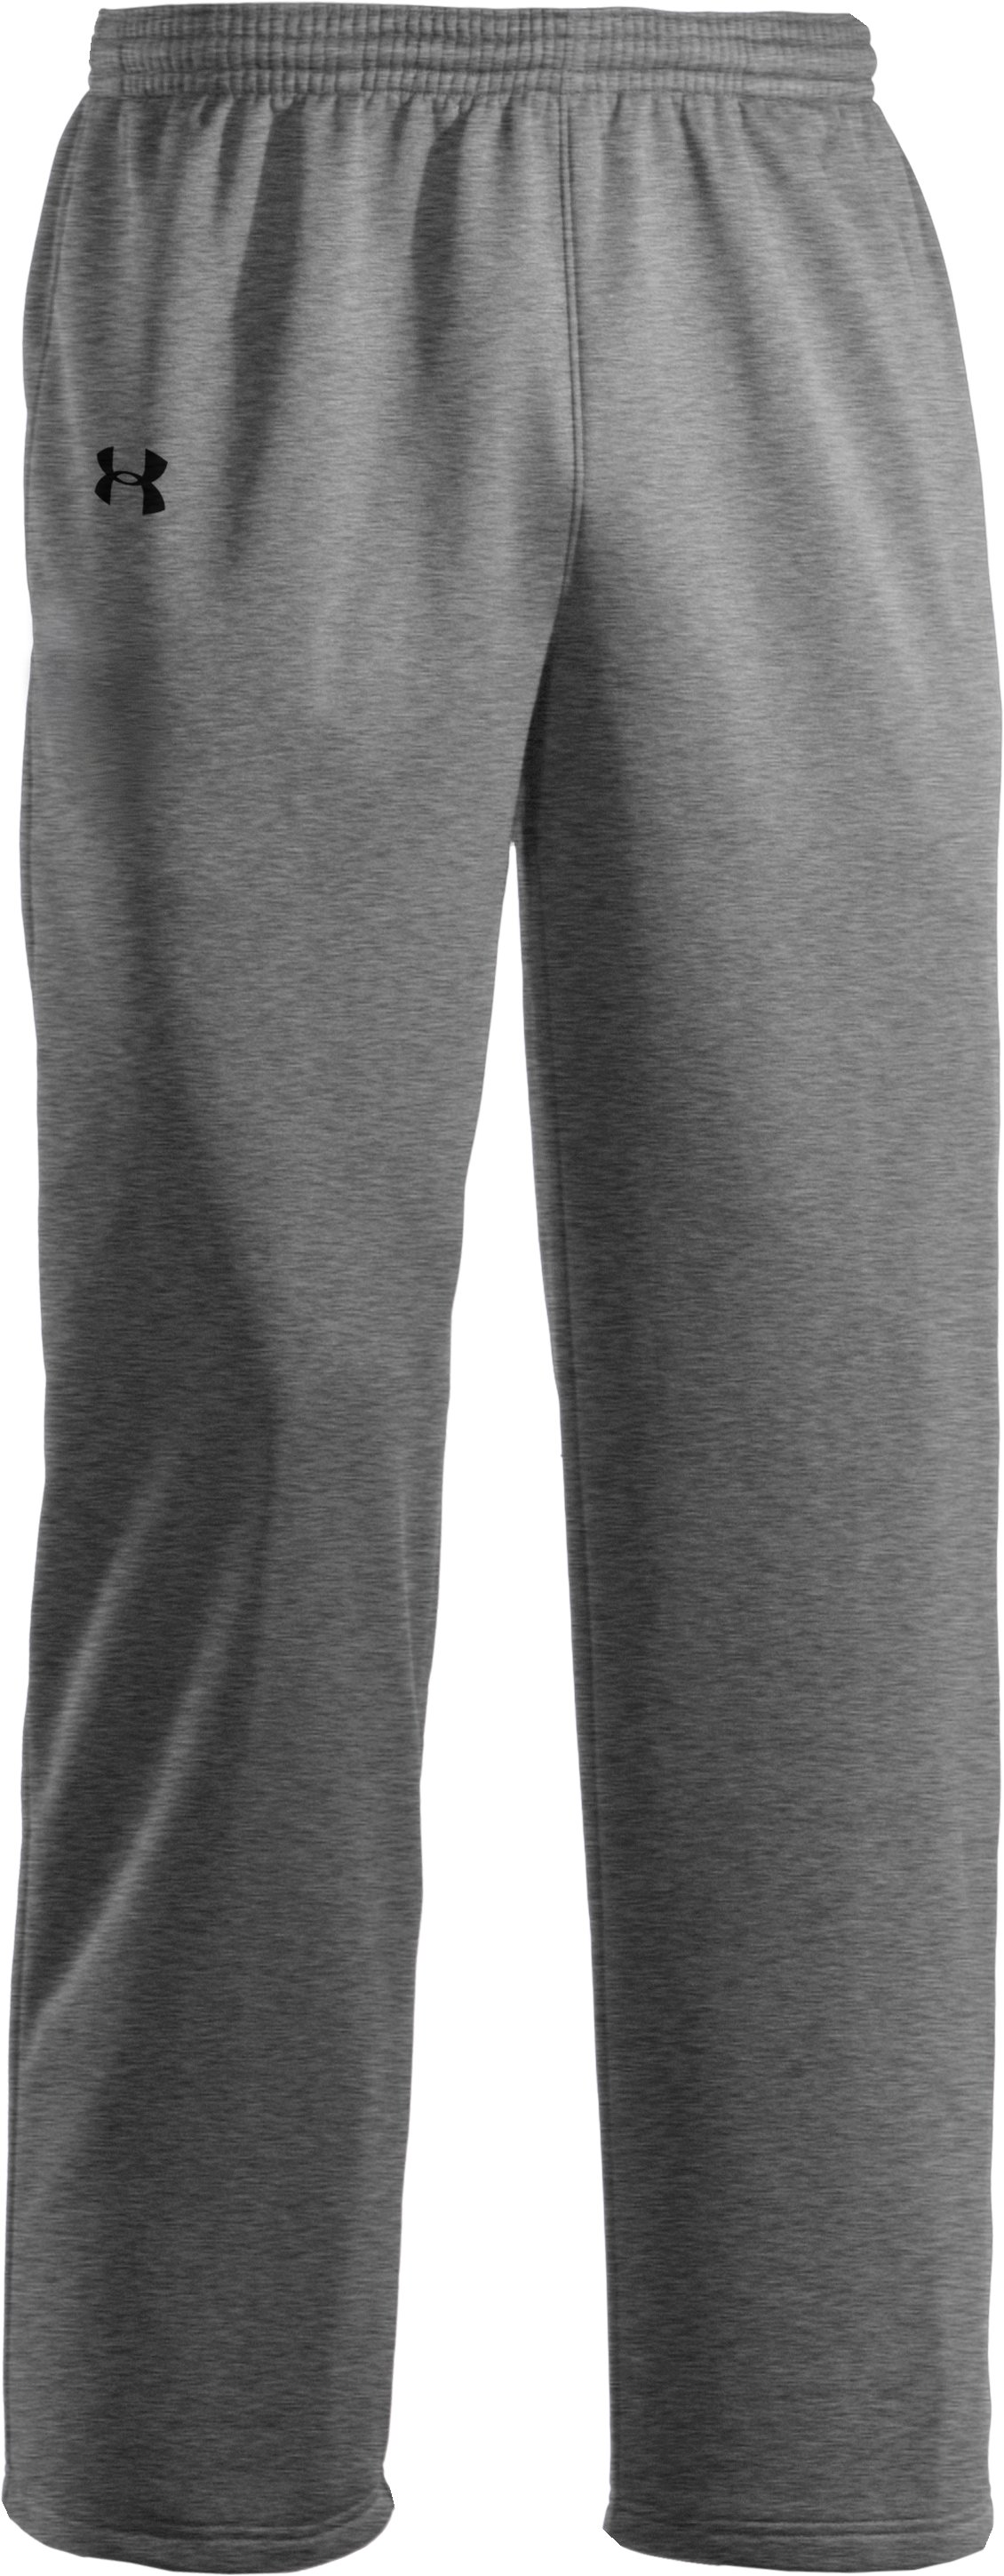 Men's Armour® Fleece Storm Pants, True Gray Heather